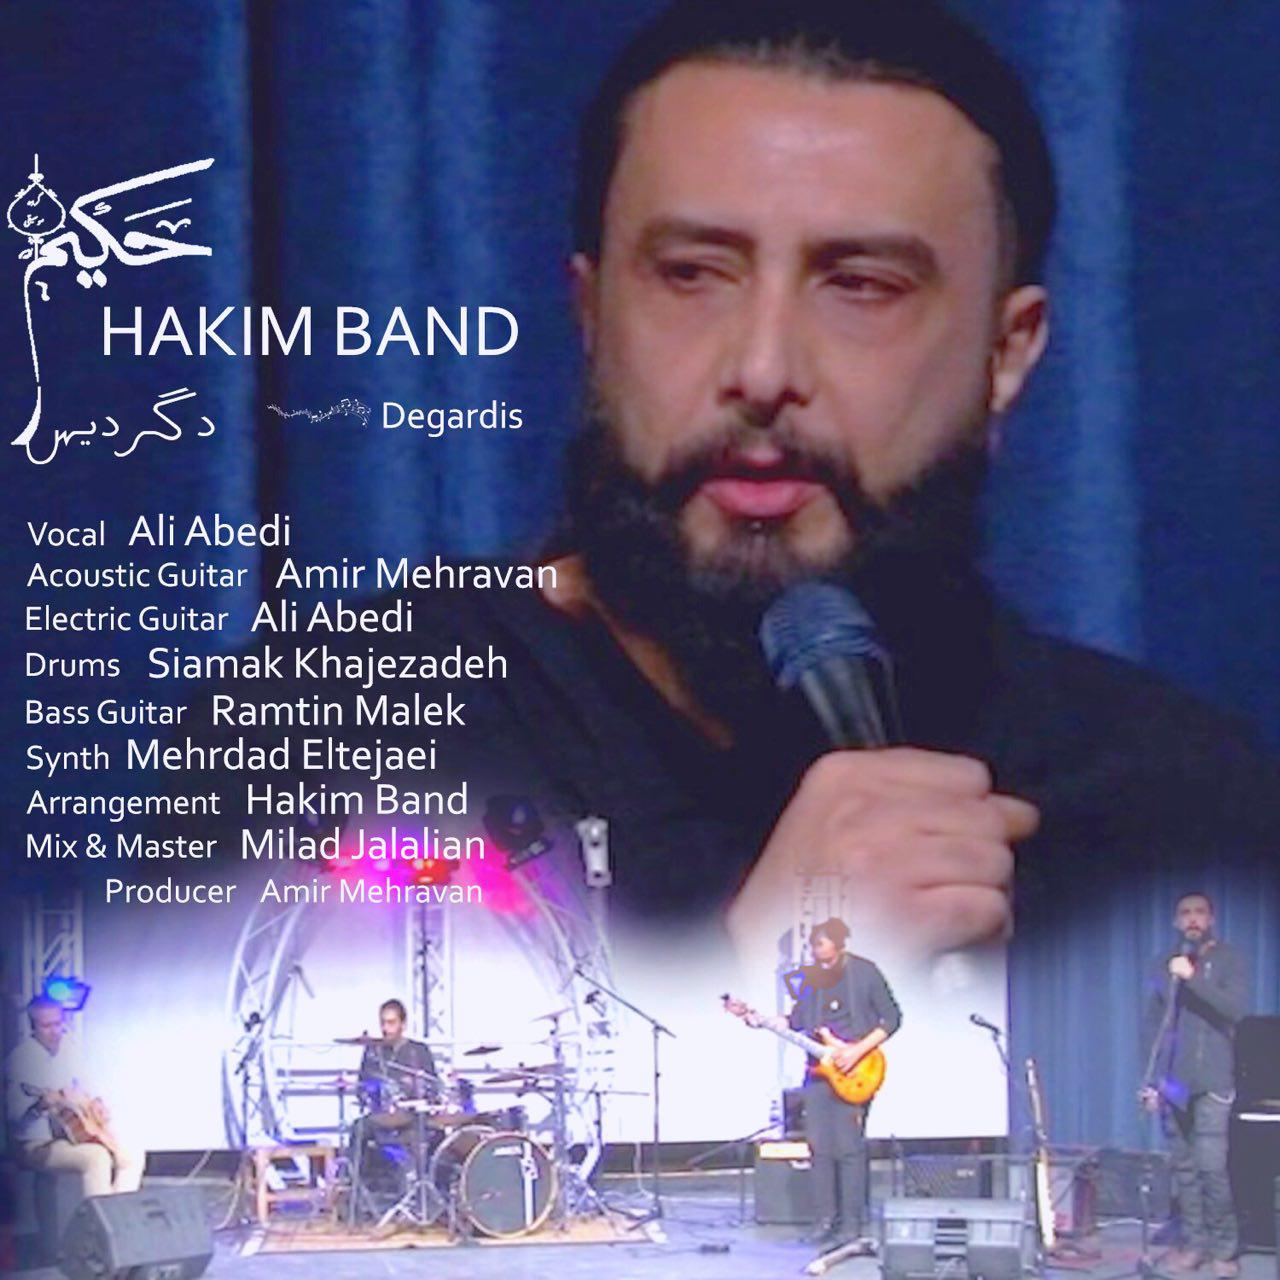 Hakim Band – Degardis